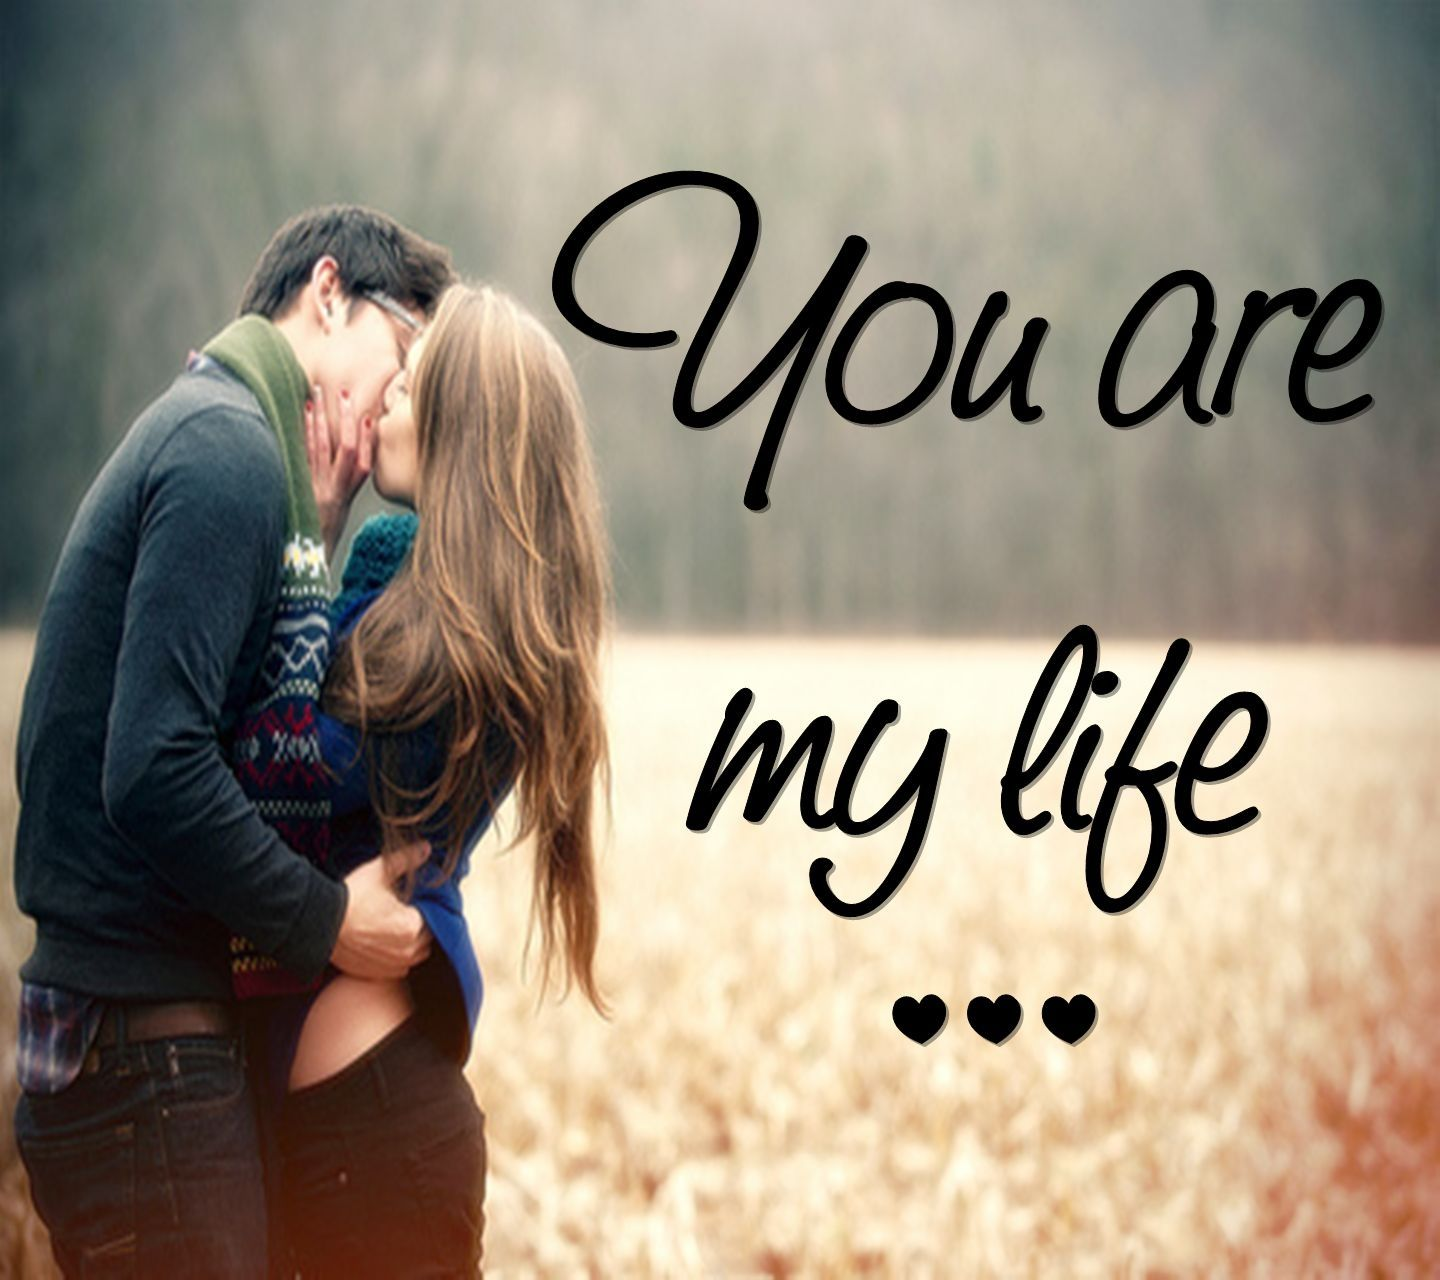 Download images on love and kiss   100 Top Kiss Kissing Quotes 1440x1280